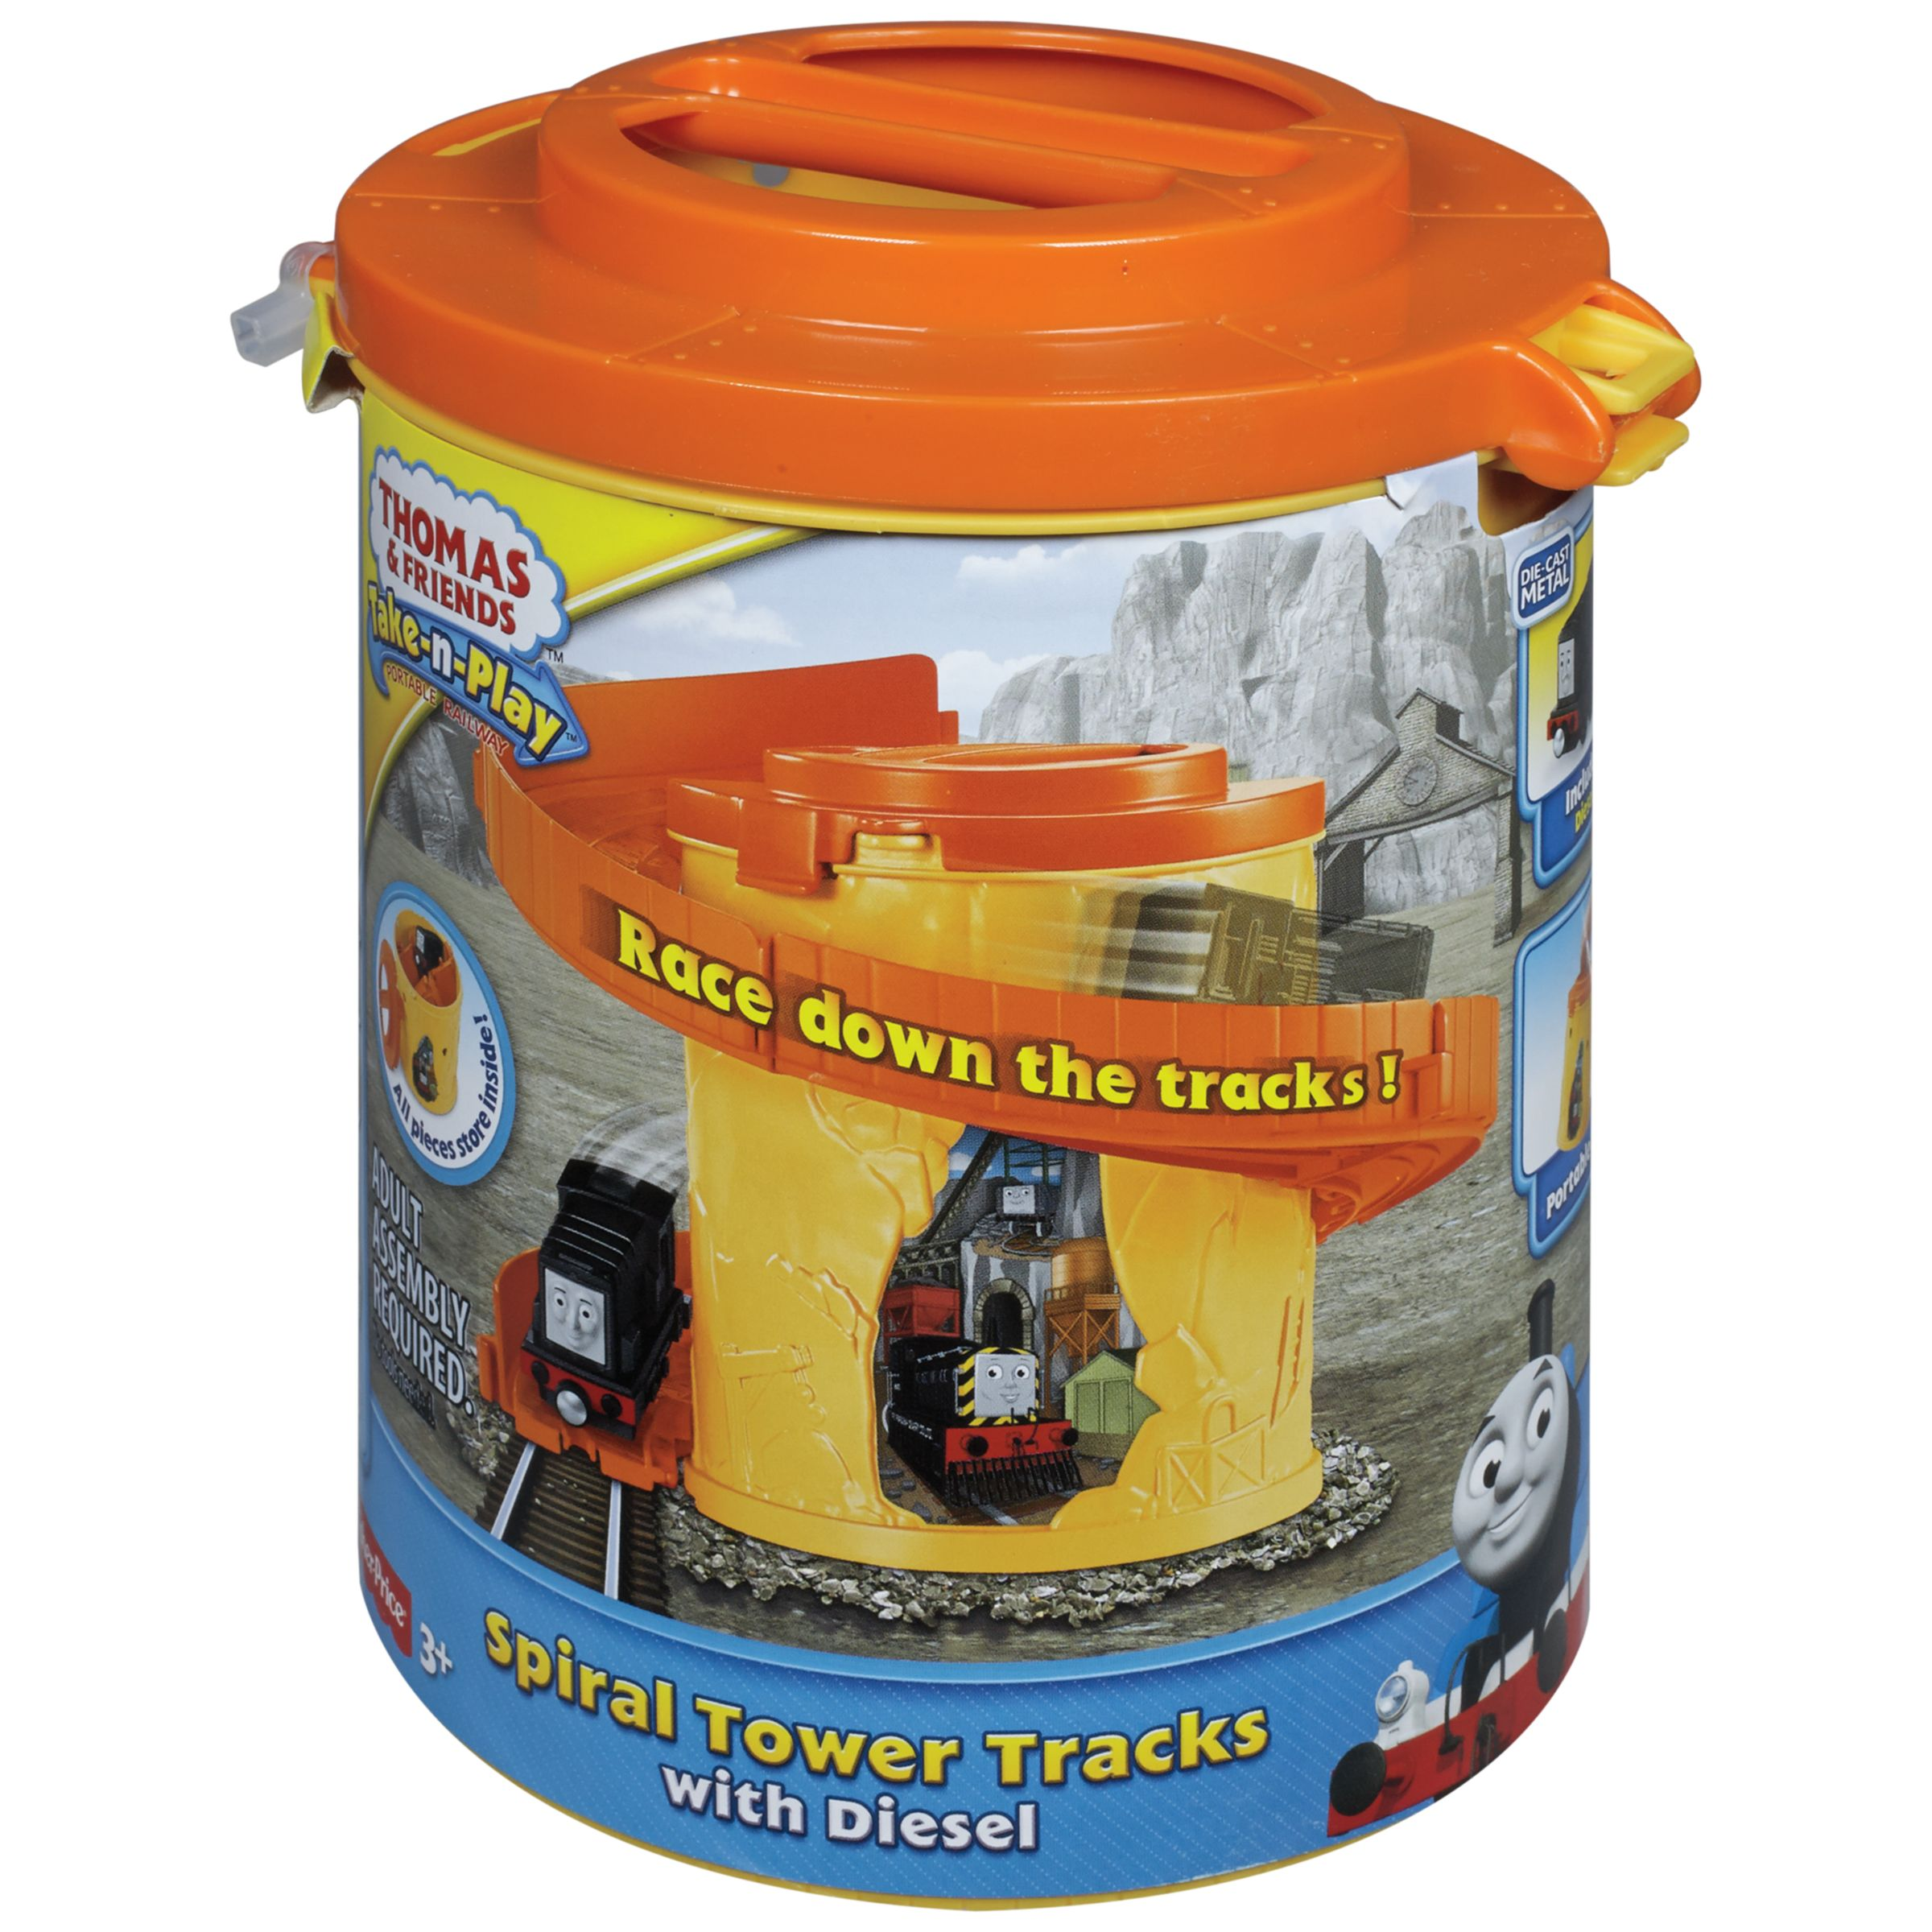 Thomas the Tank Engine Fisher-Price Thomas & Friends Take-n-Play Spiral Tower Tracks, Assorted